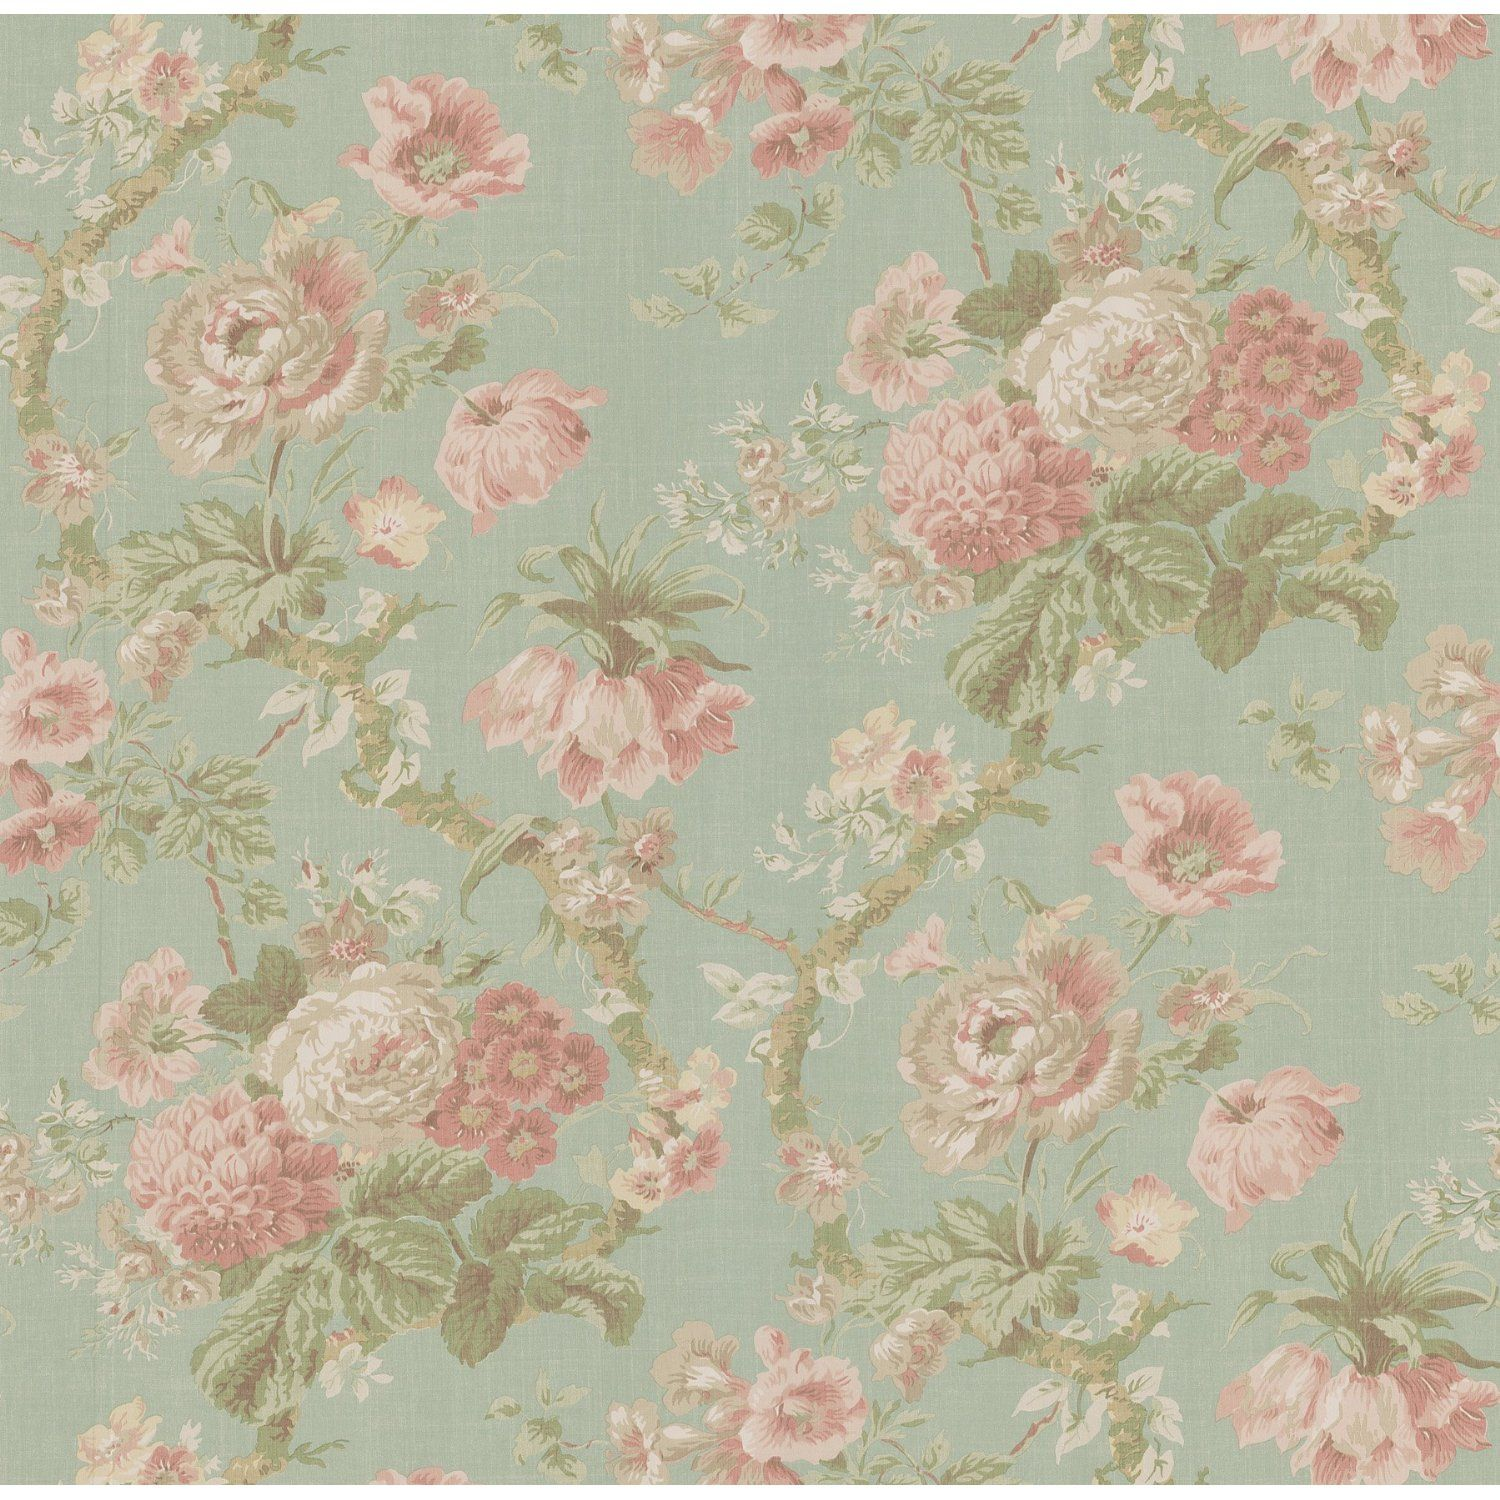 Vintage Wallpaper Background Vintage And Came Up With This Vintage Floral Wallpaper That And The Vintage Floral Wallpapers Vintage Flowers Wallpaper Flower Wallpaper